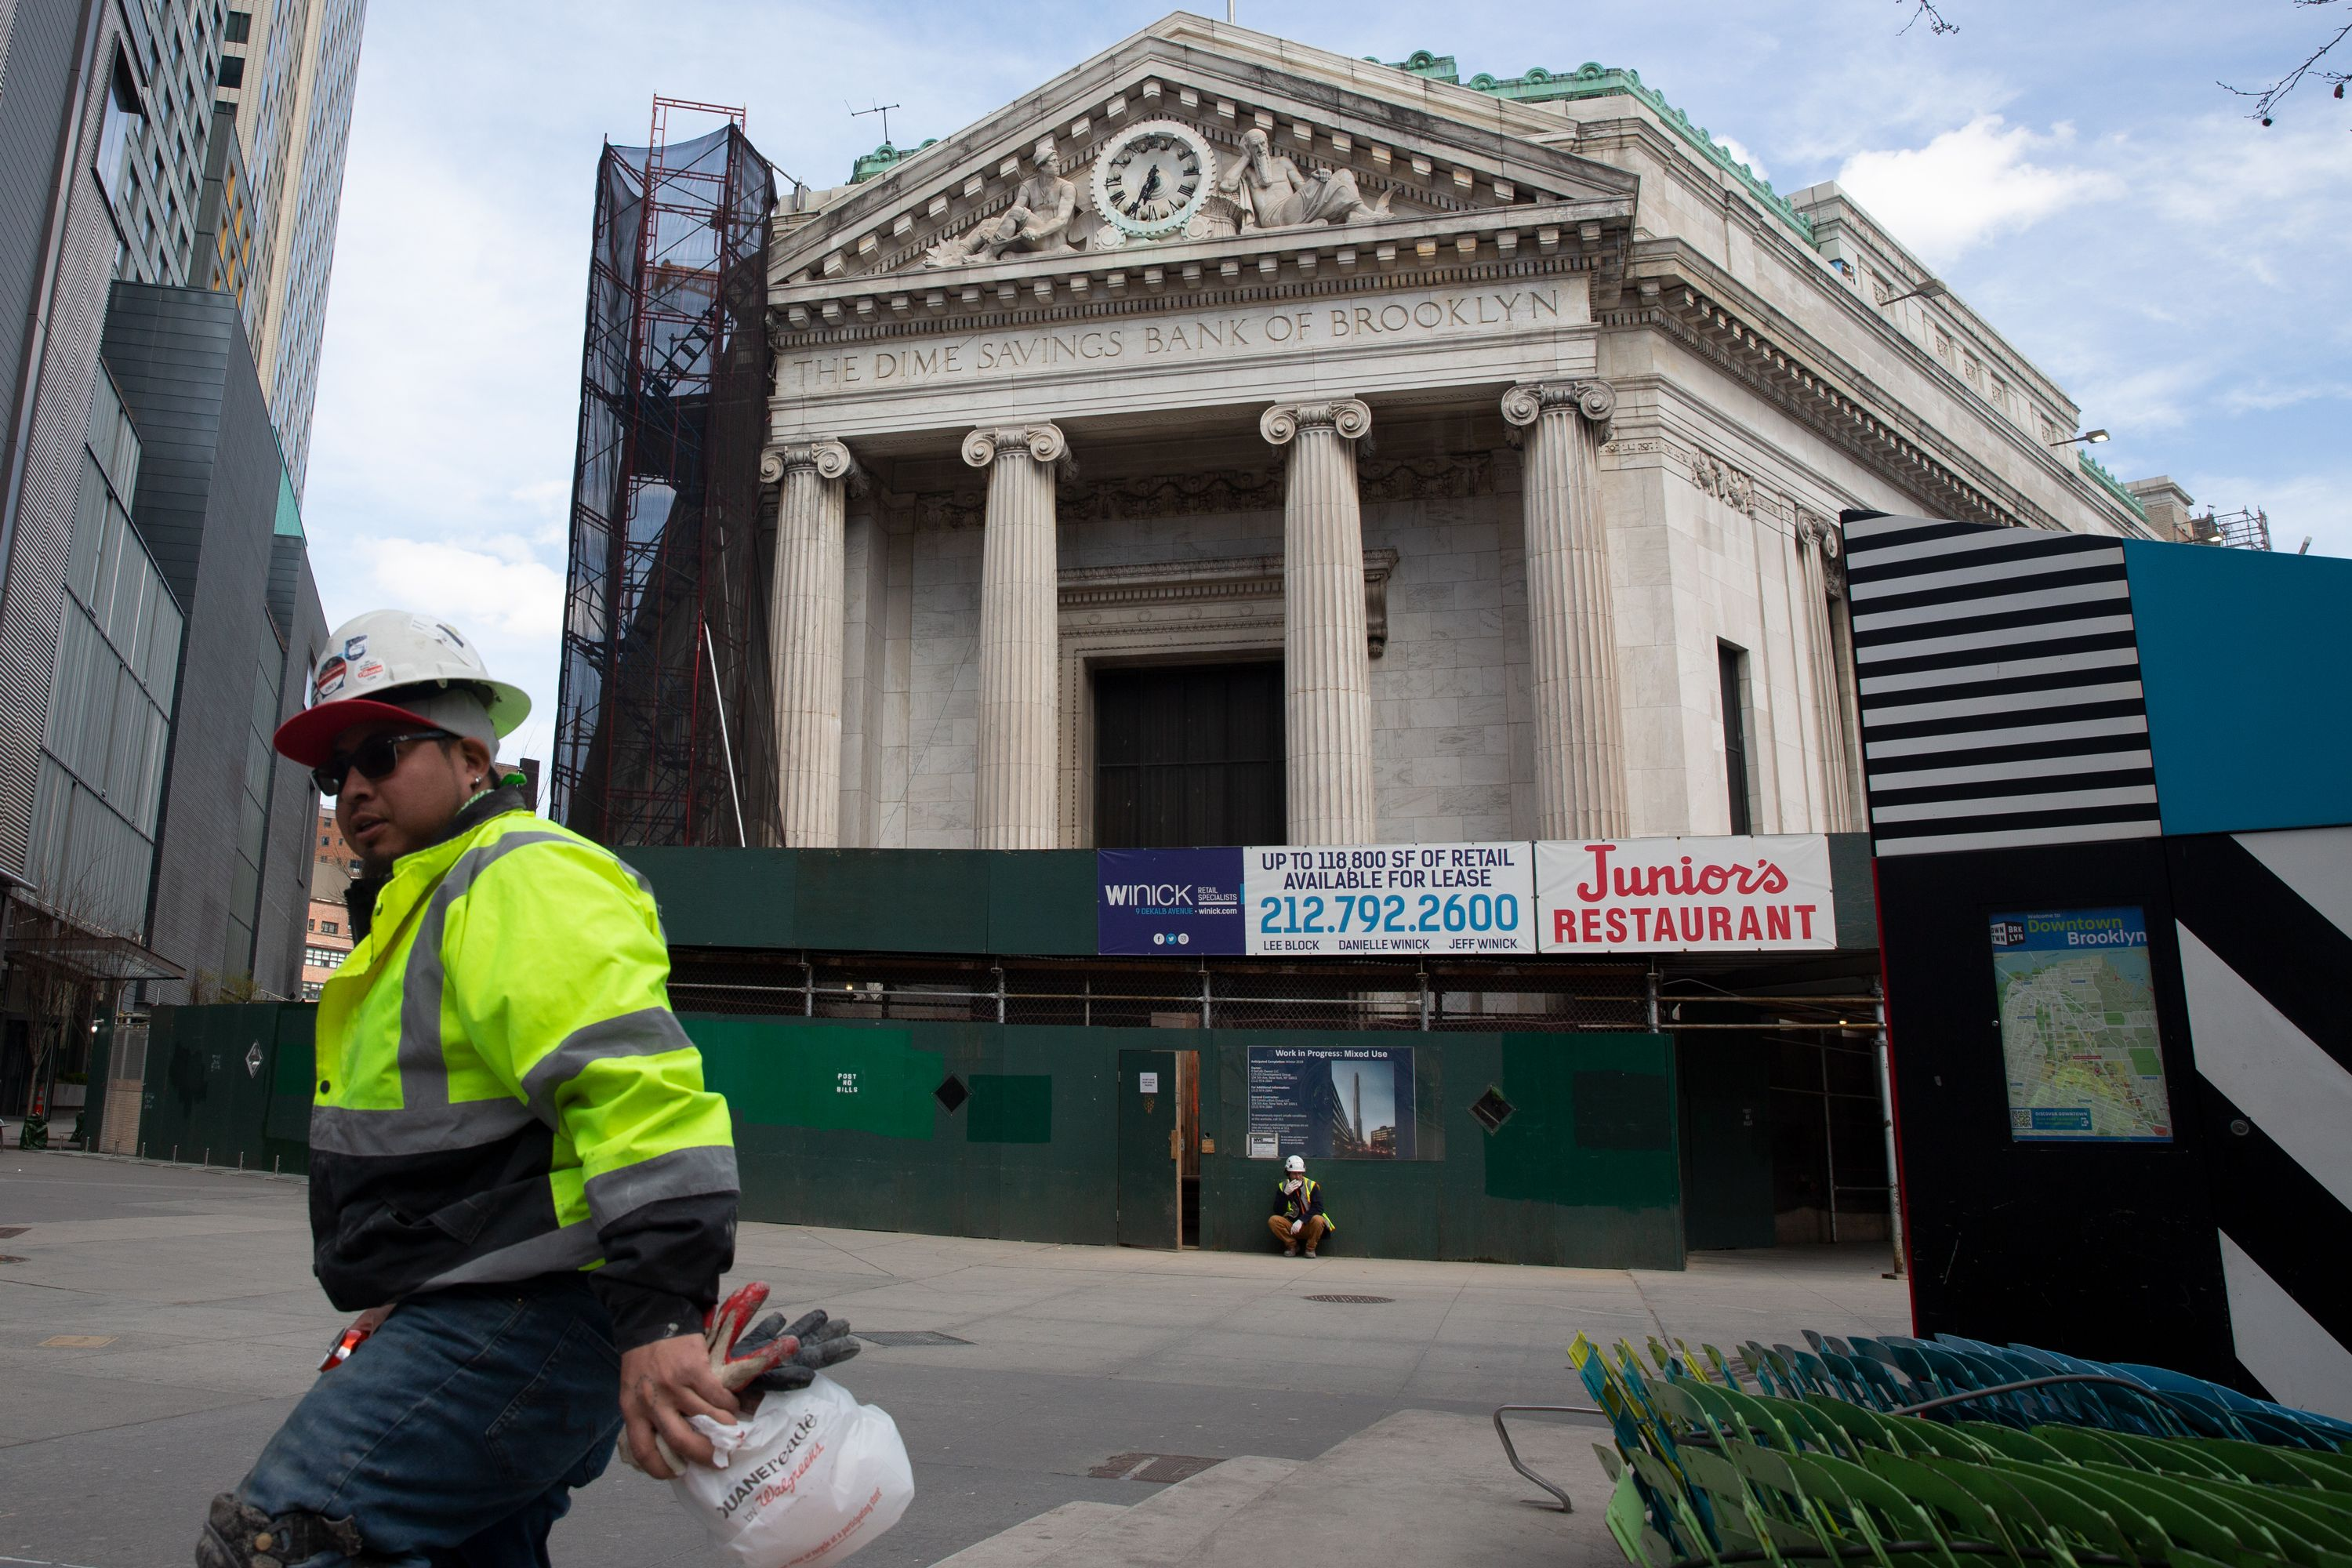 Construction was still going on inside Downtown Brooklyn's Dime Savings Banks building during the height of the coronavirus outbreak.